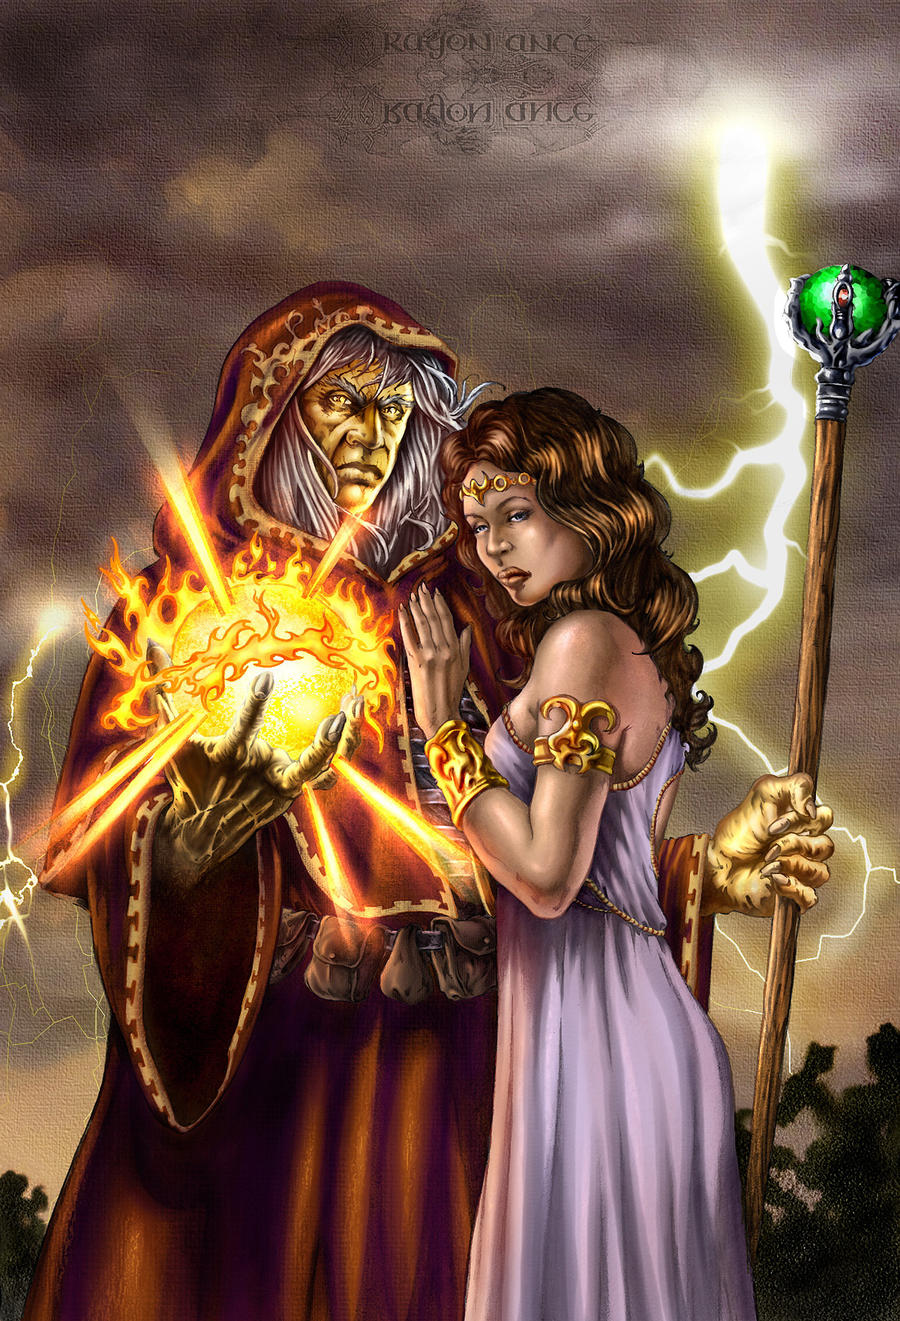 http://fc06.deviantart.net/fs23/i/2008/006/f/e/Raistlin_and_Christiana_color_by_wici.jpg